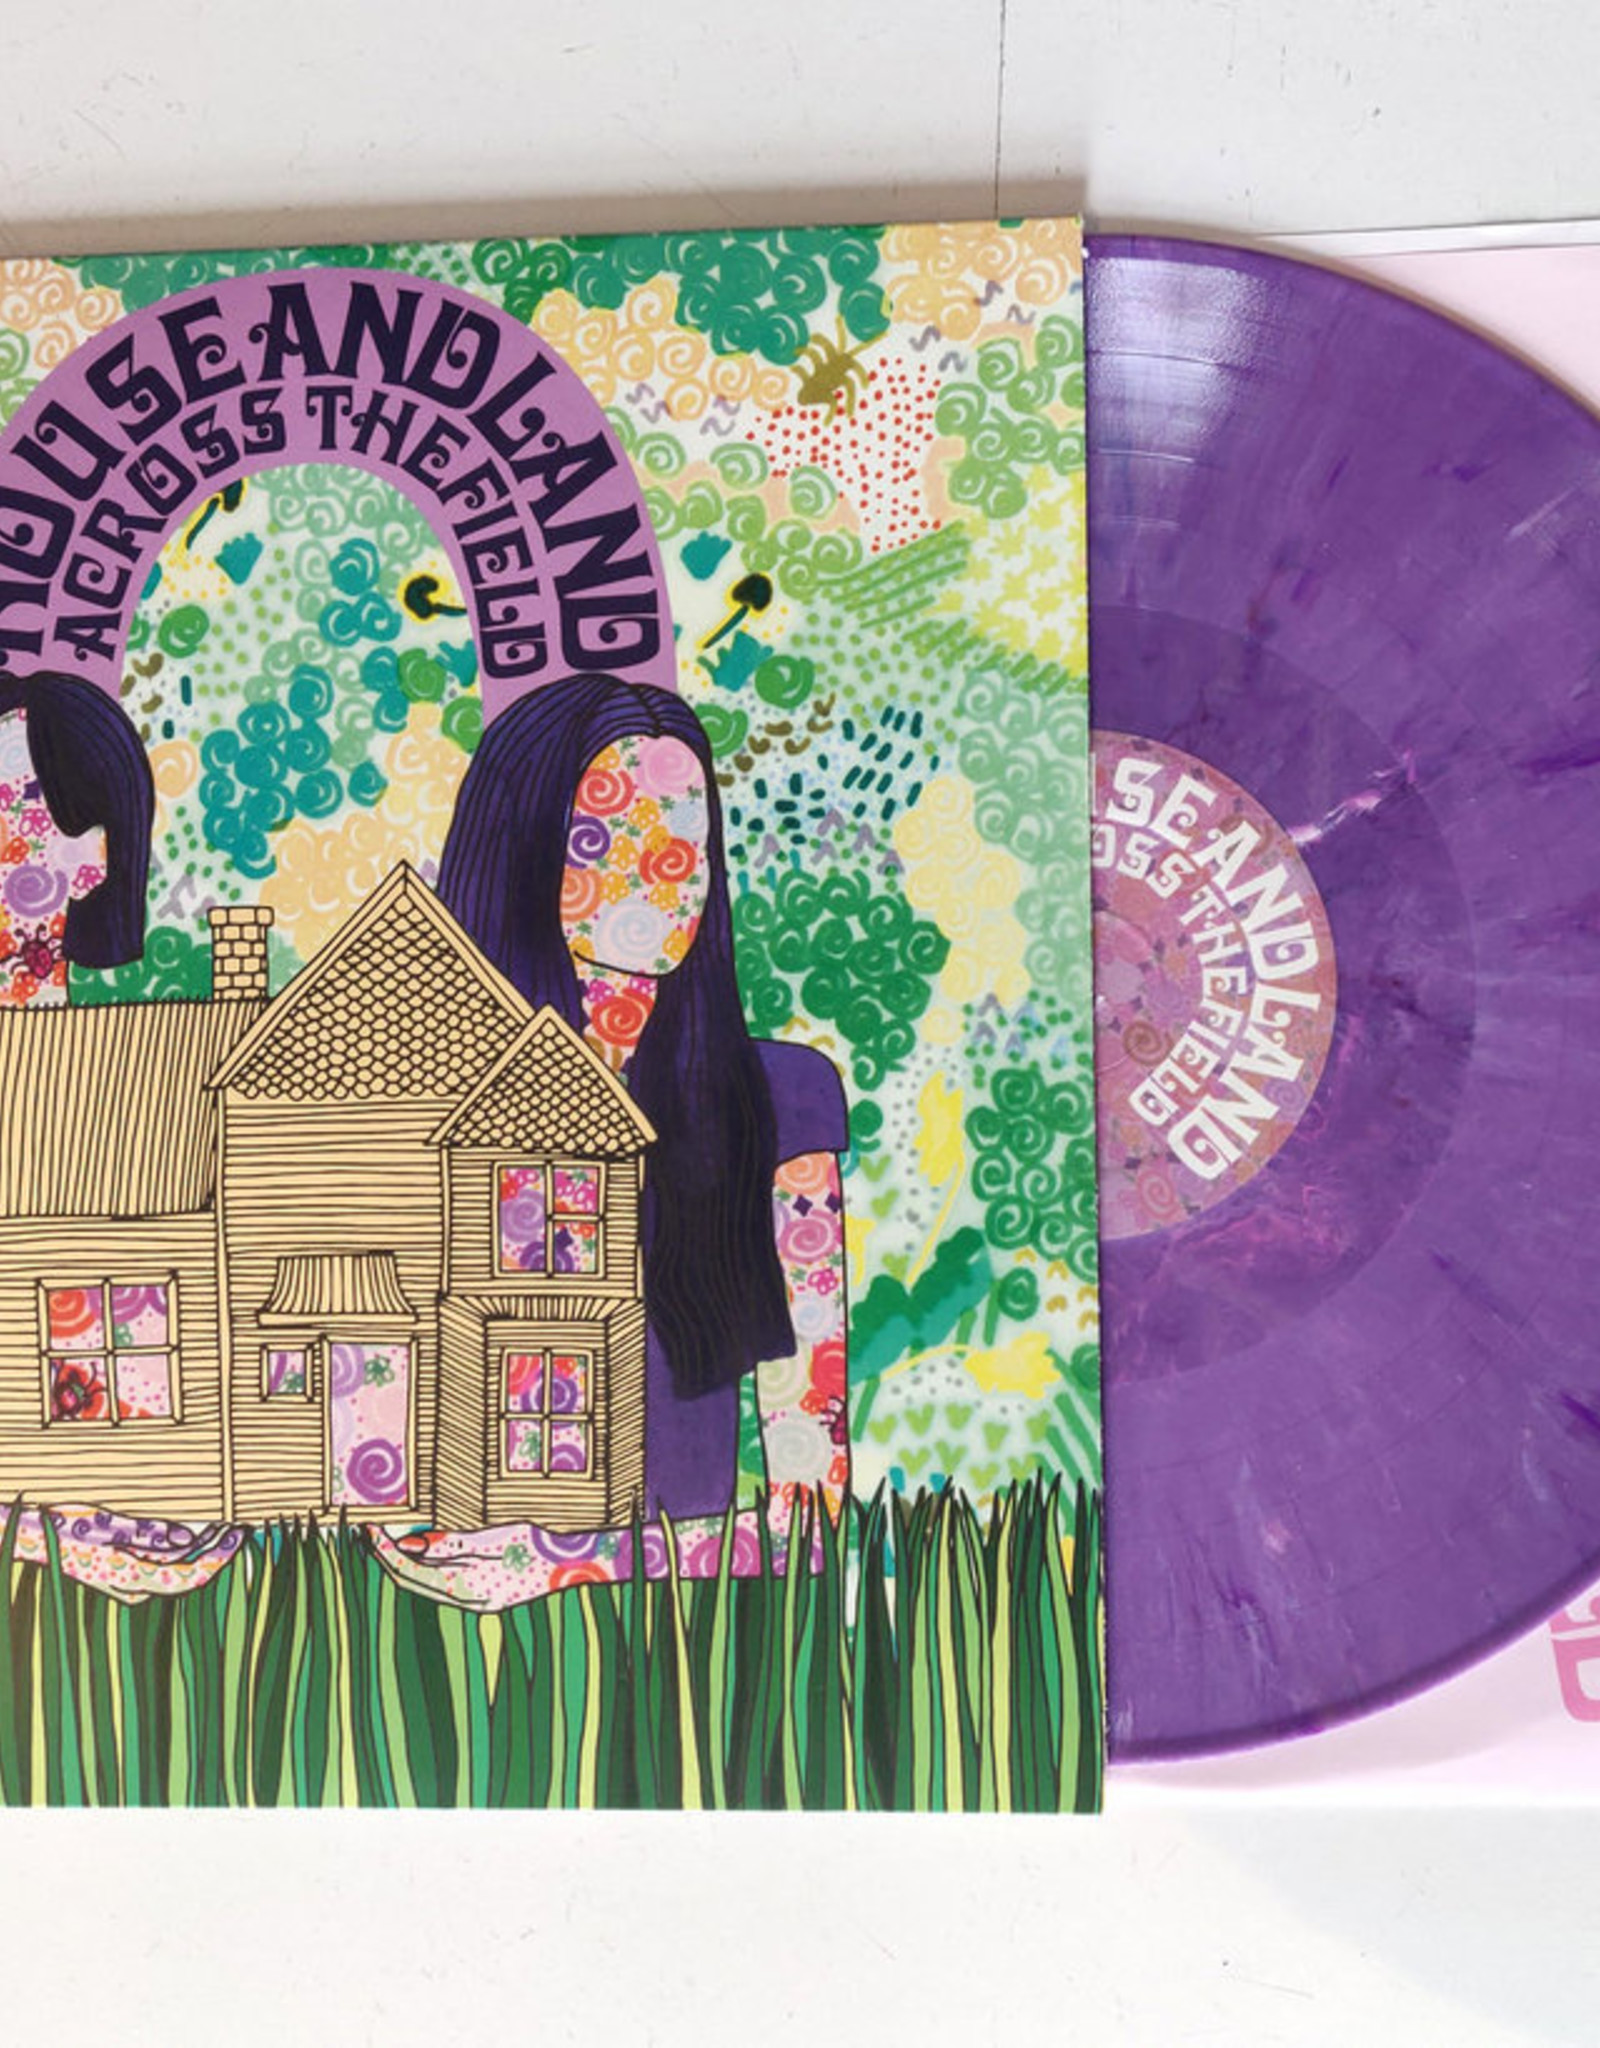 House And Land - Across The Field (Limited Color Vinyl)